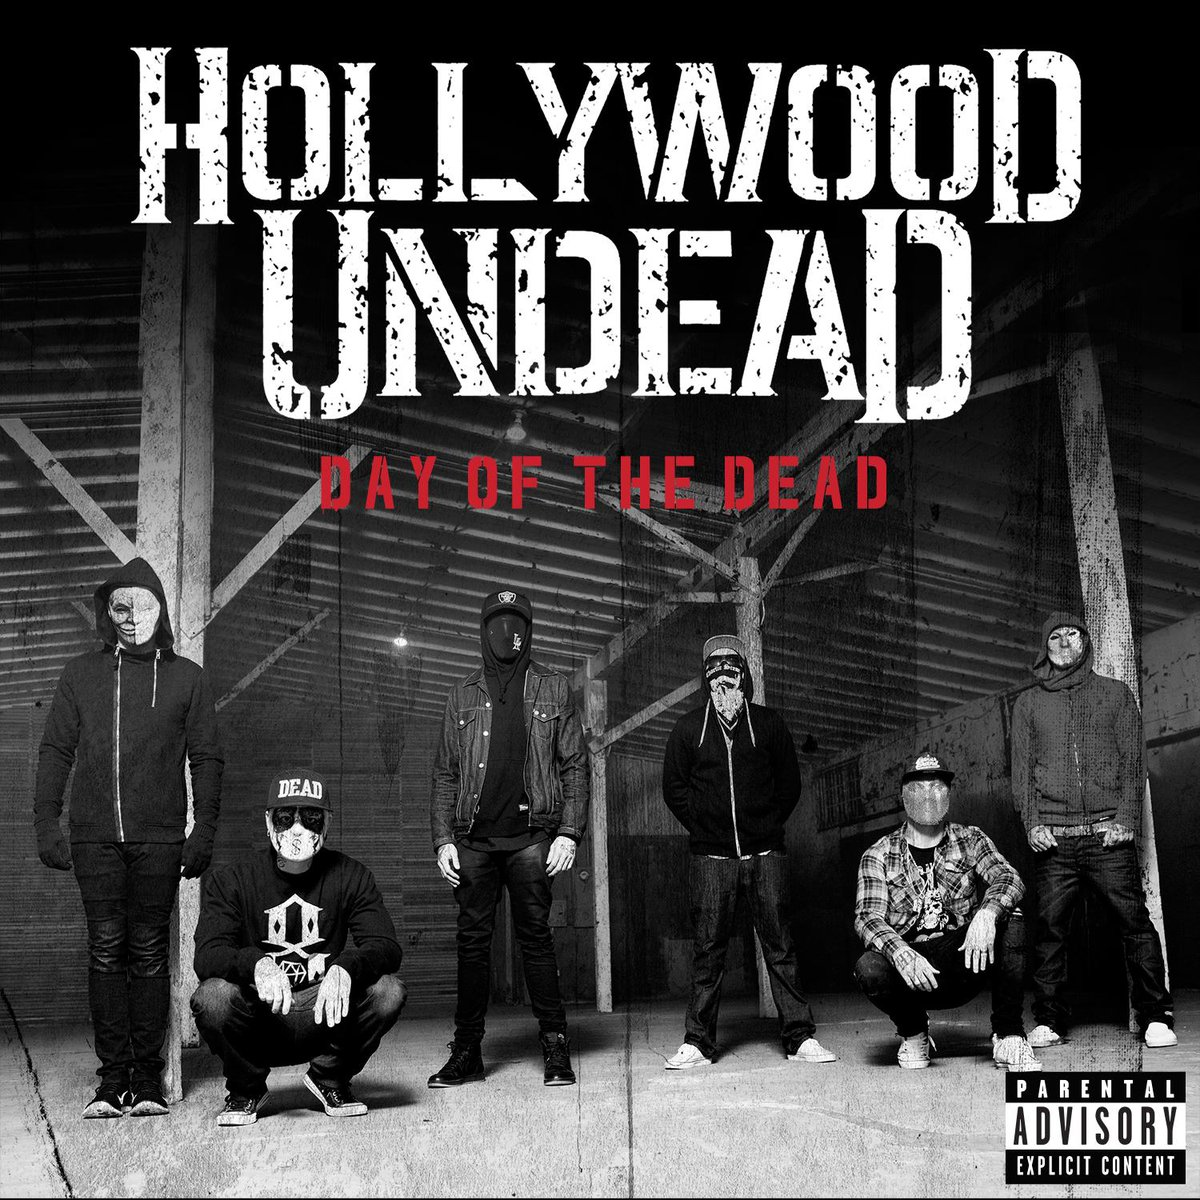 Our new album 'Day Of The Dead' is out now! Download it @iTunesMusic: http://t.co/uqfPEP3zve. #HUDayOfTheDead http://t.co/RwTcy4aSjk